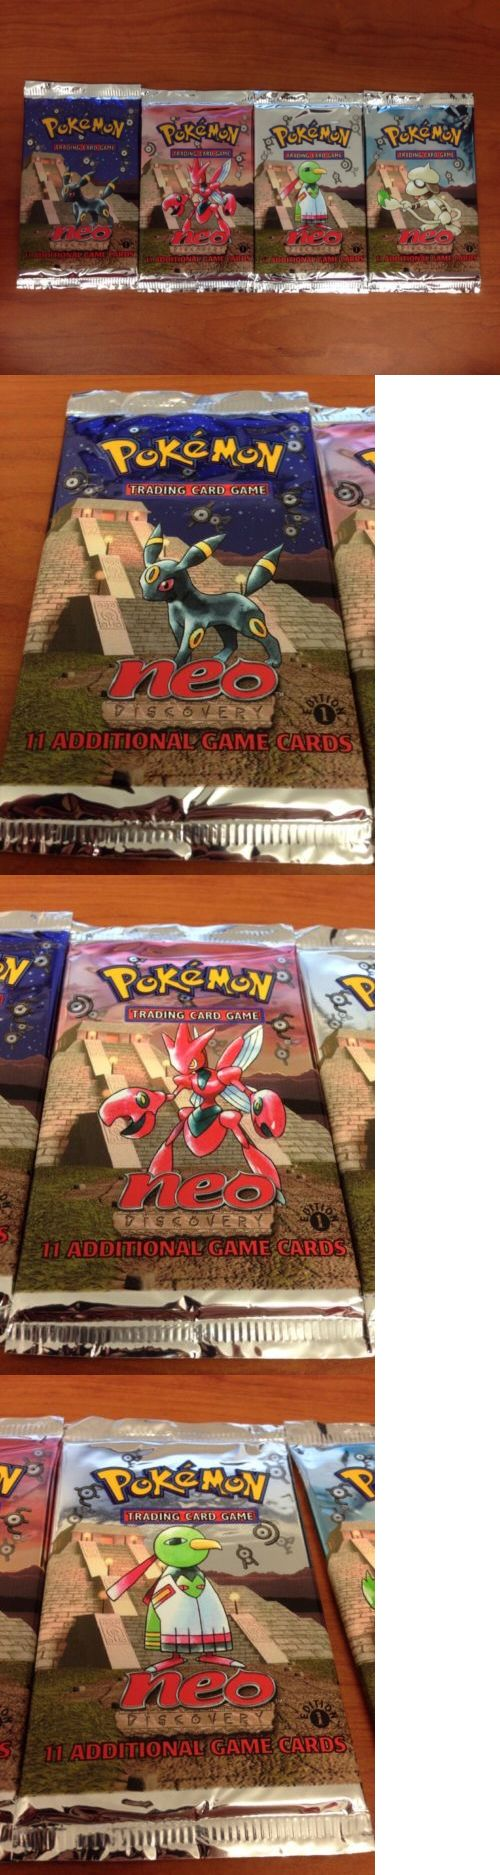 Pok mon Sealed Booster Packs 4301: Pokemon 1St Edition Neo Discovery New Sealed Booster Packs - All 4 Arts -> BUY IT NOW ONLY: $200 on eBay!